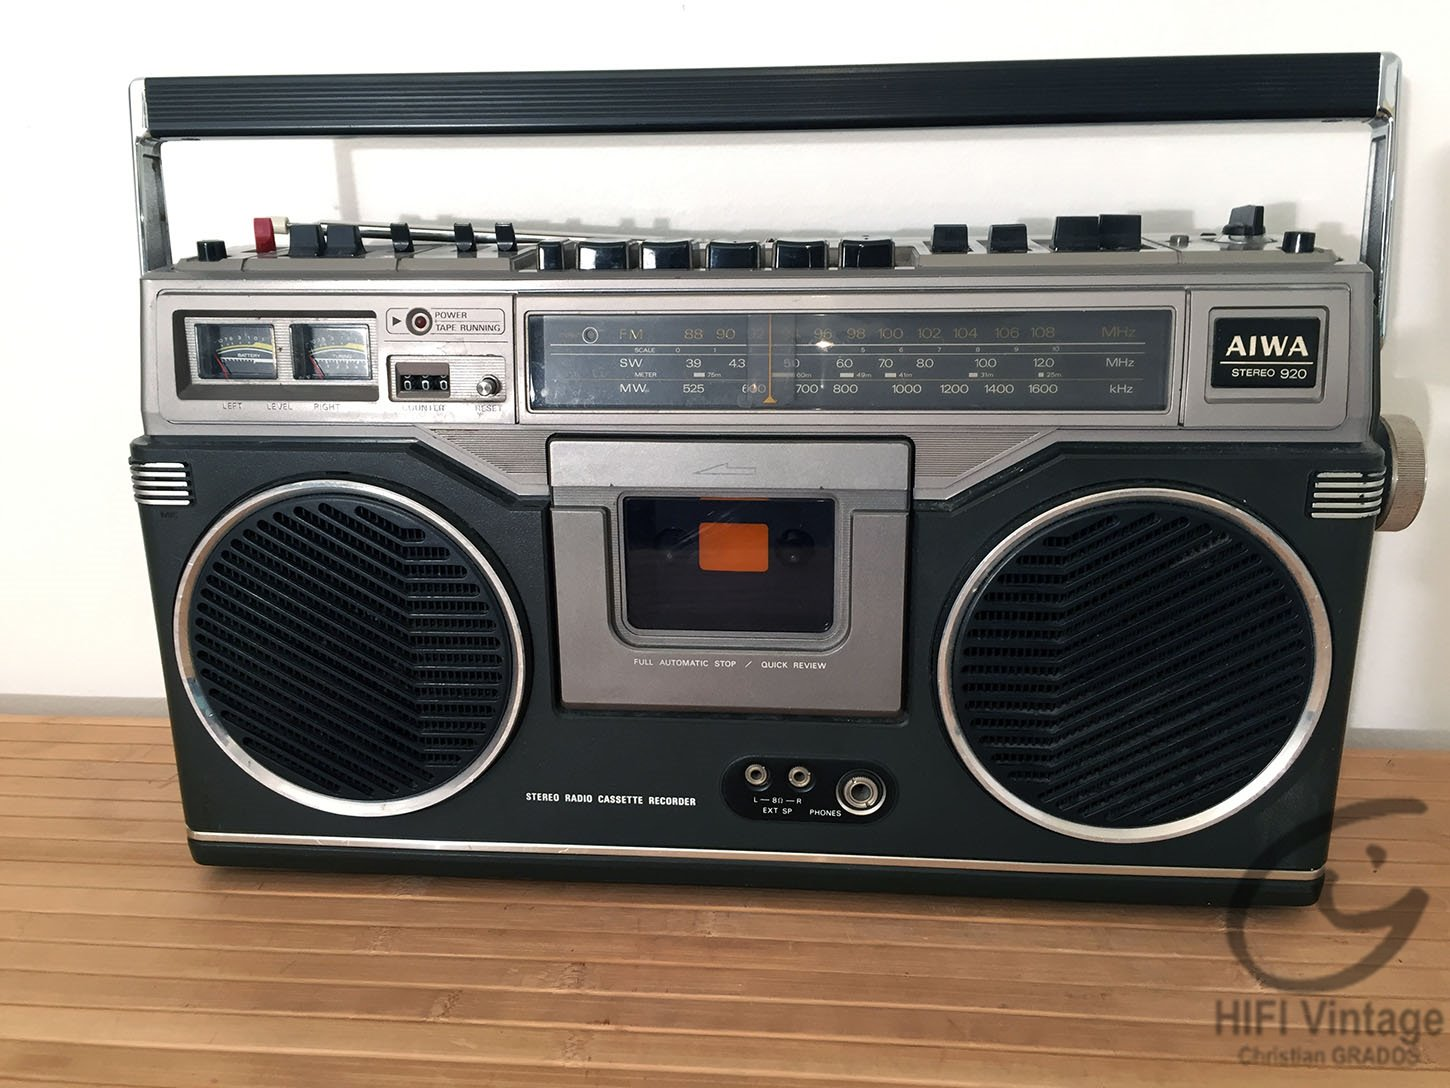 list of synonyms and antonyms of the word aiwa radio Sony 10 Disc CD Player Sony Car CD Player Manual